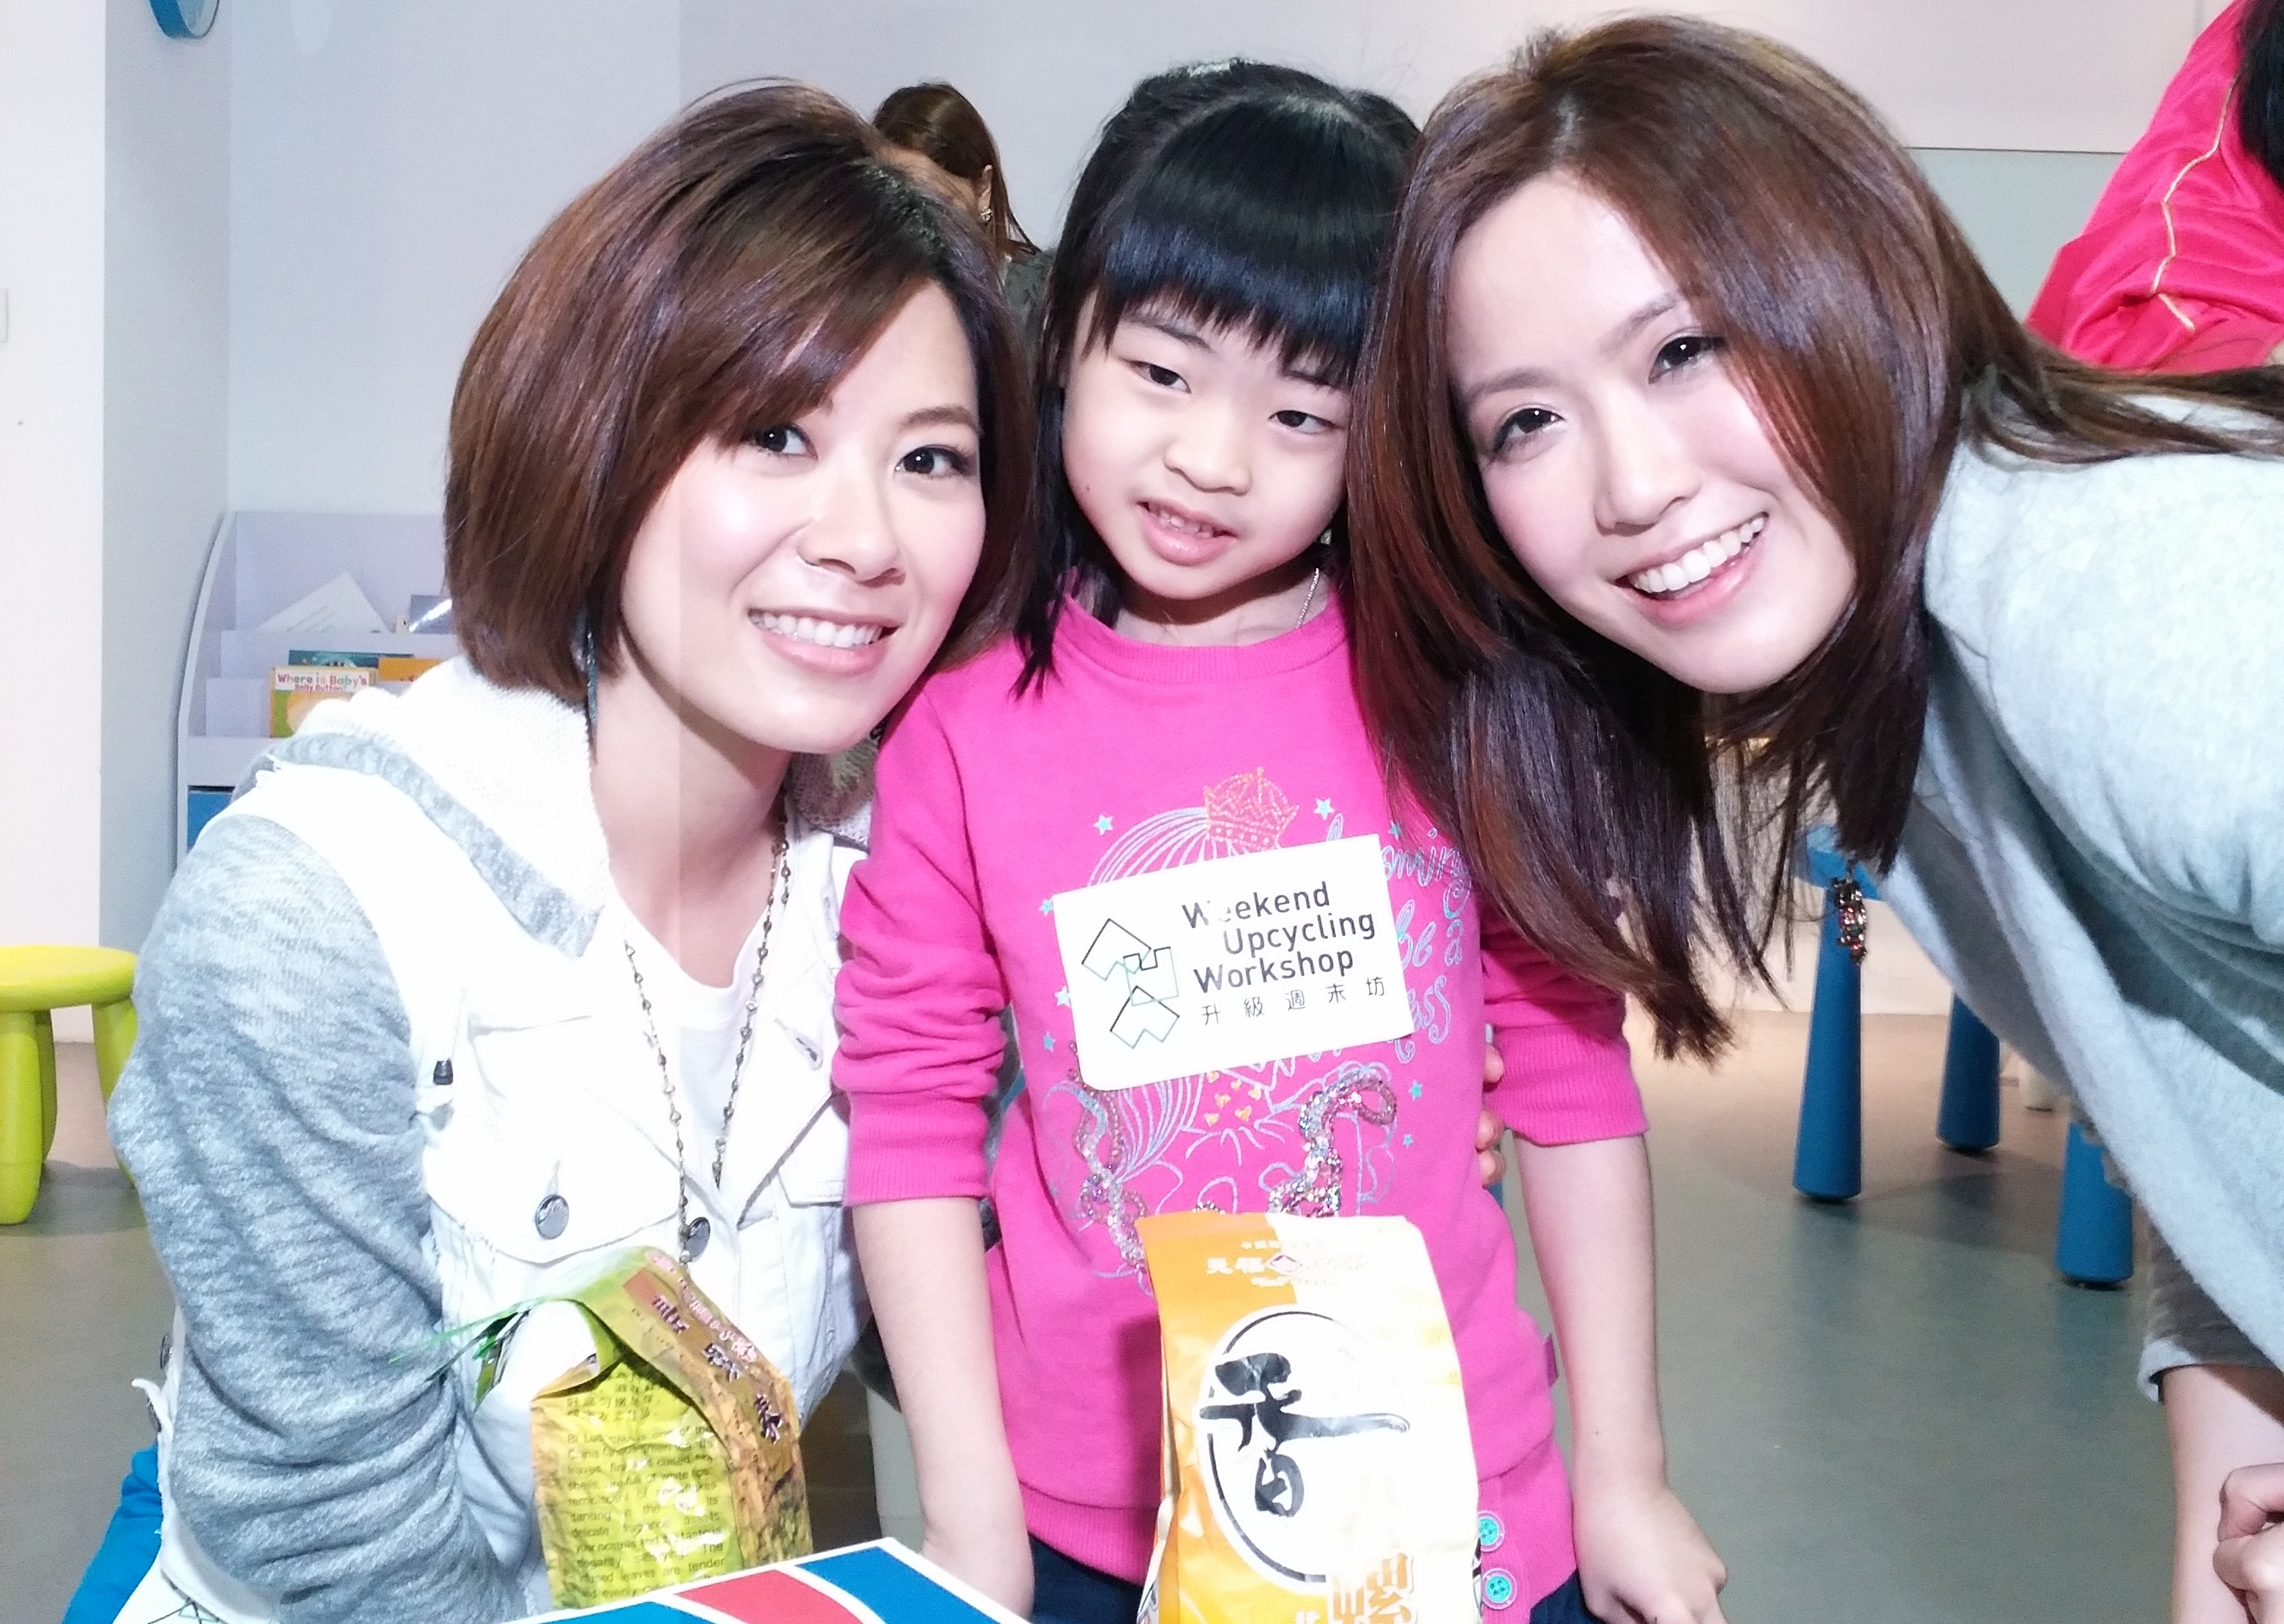 Robynn & Kendy Jammed with Heep Hong Children at Autism Rocks Held by Weekend Upcycling Workshop